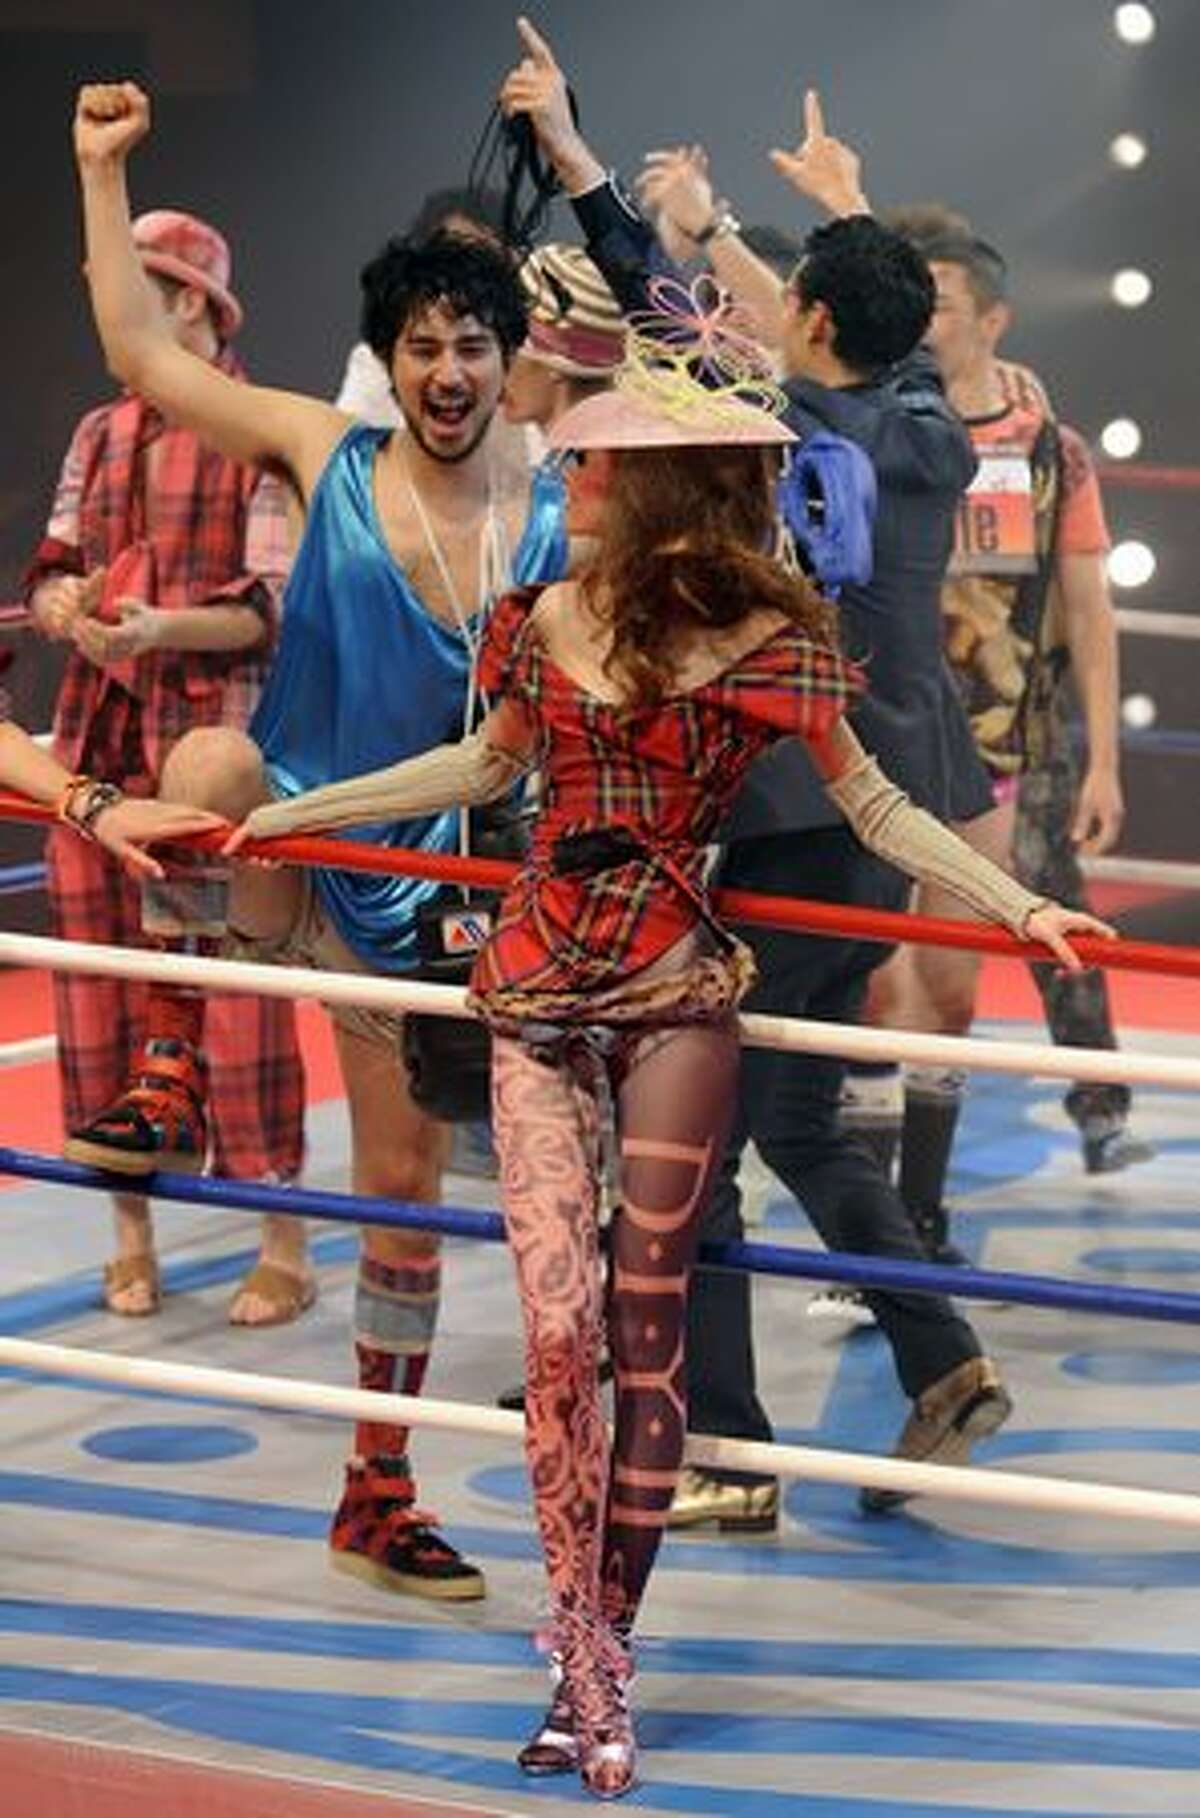 Models celebrate the finale of the fashion show of British designer Vivienne Westwood at a boxing stadium in Tokyo.